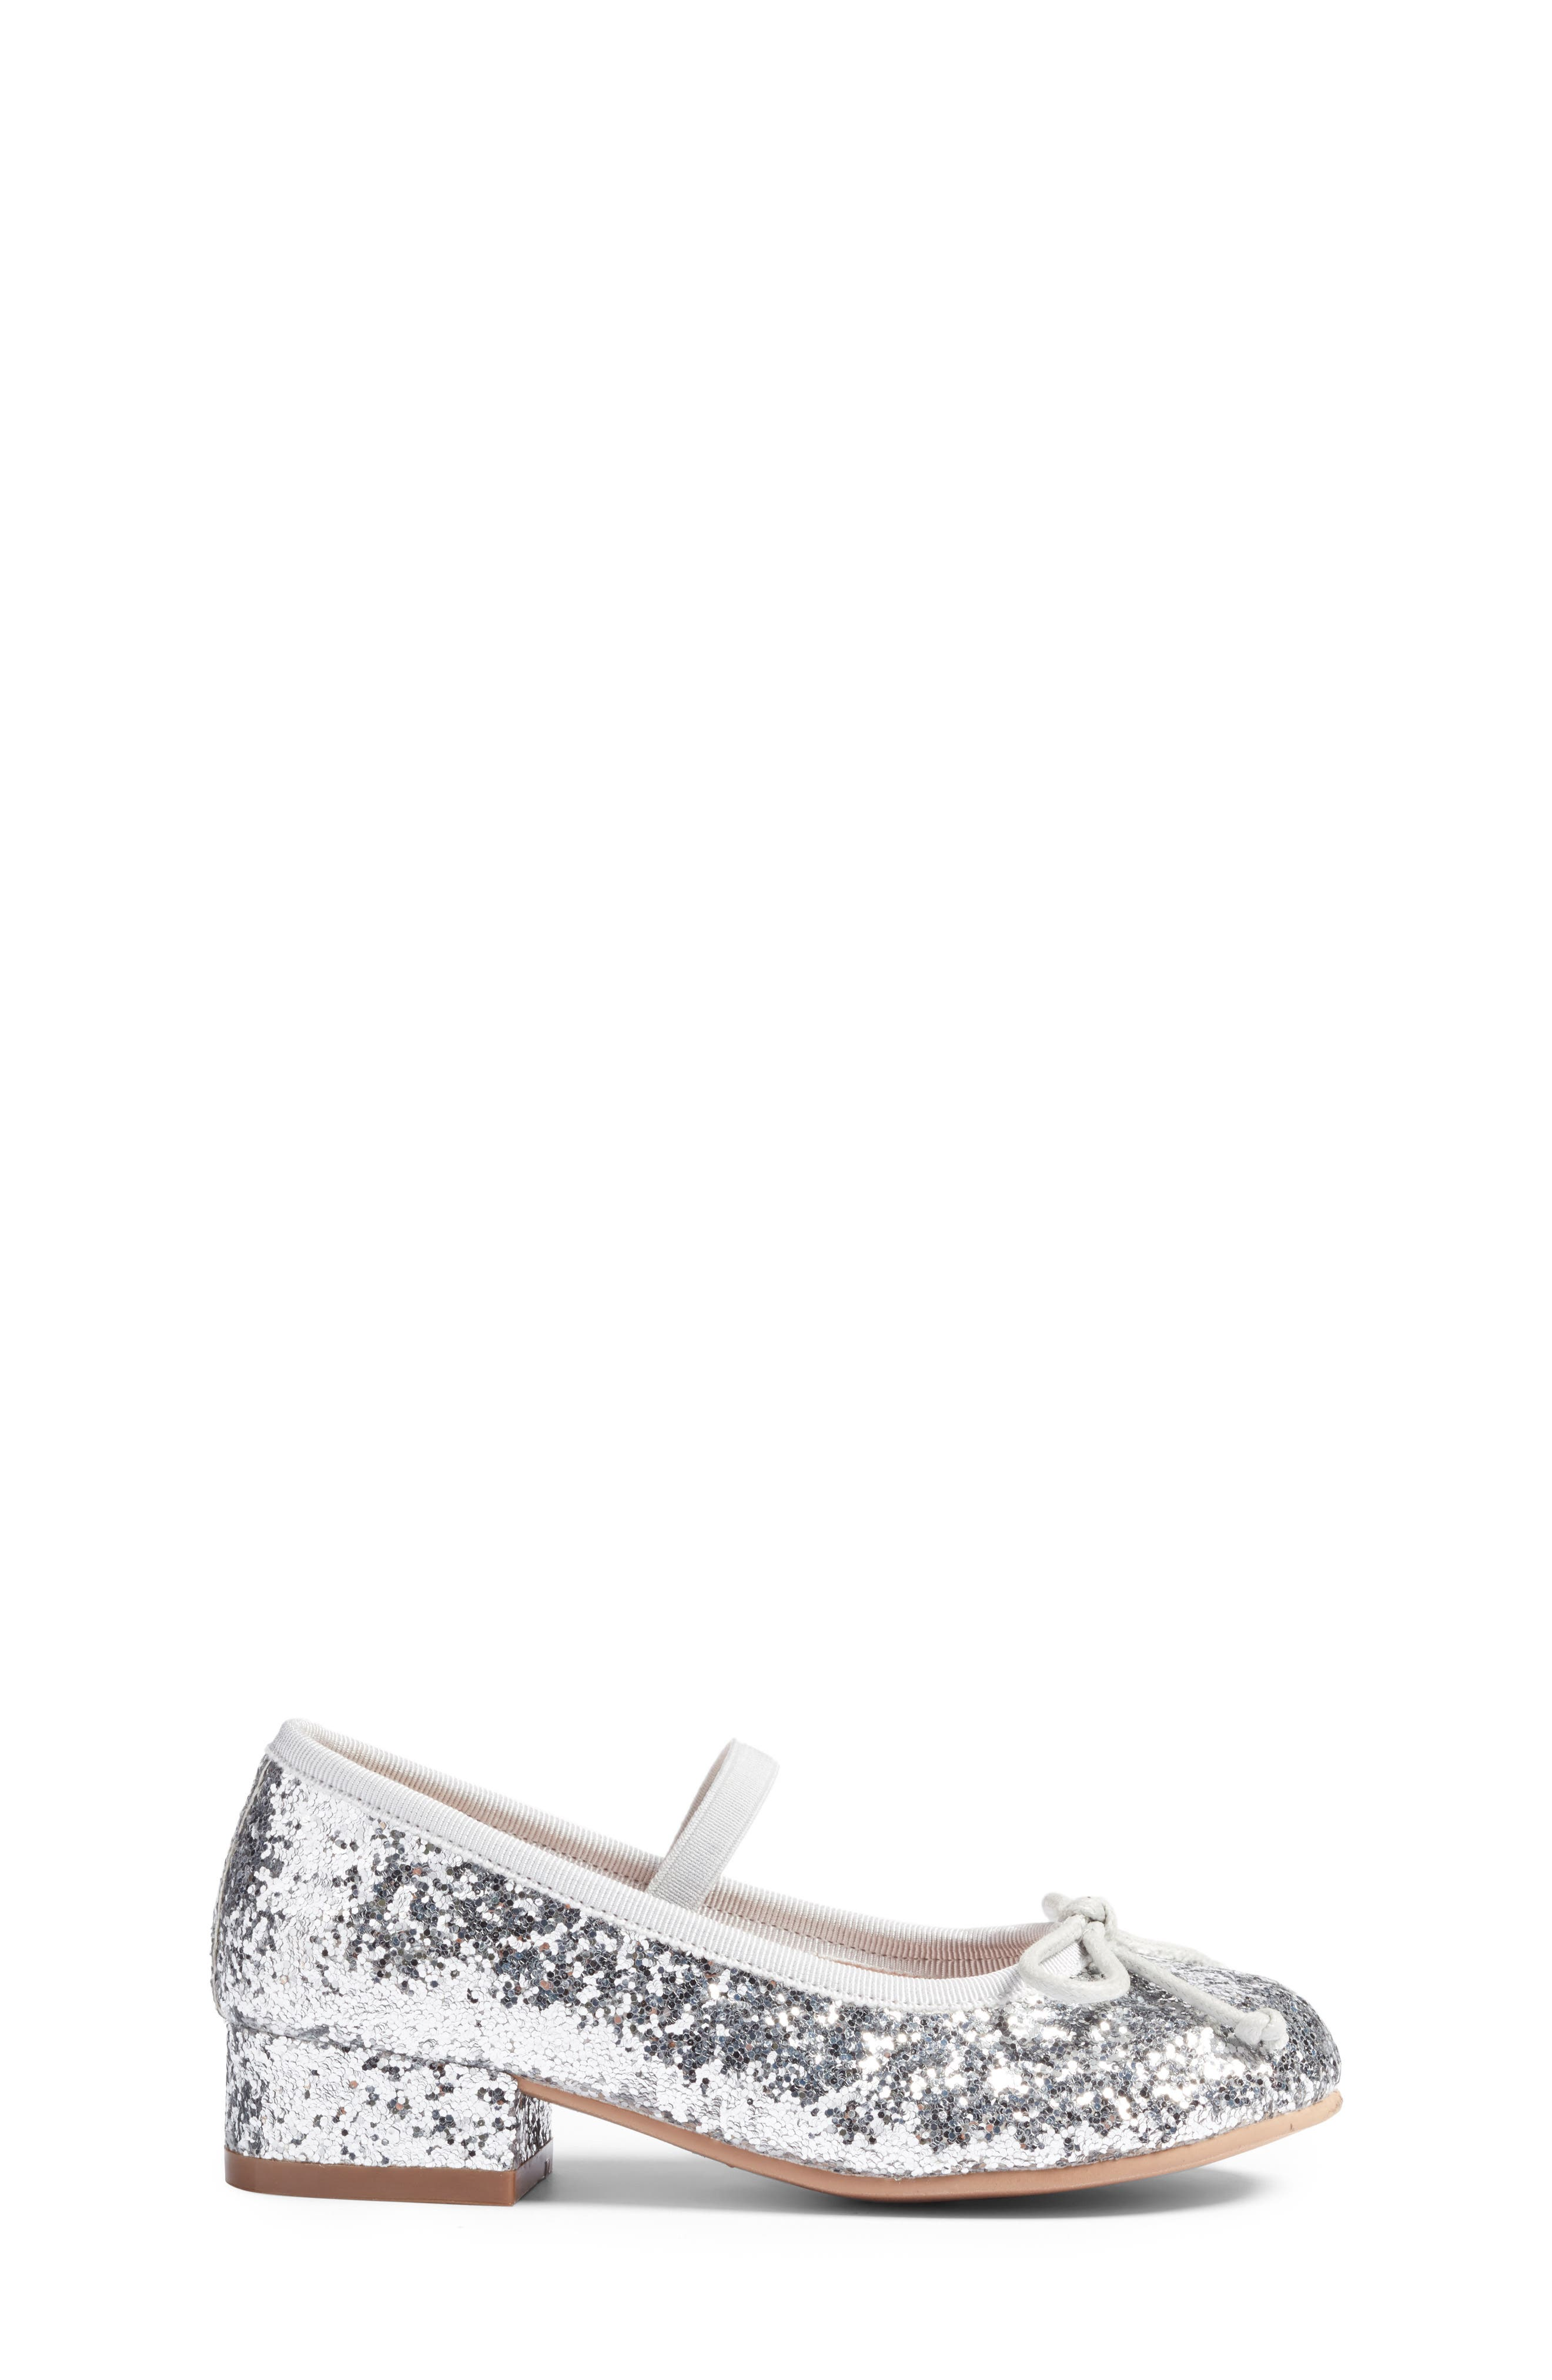 Hallie Glittery Mary Jane,                             Alternate thumbnail 3, color,                             Silver Glitter Faux Leather